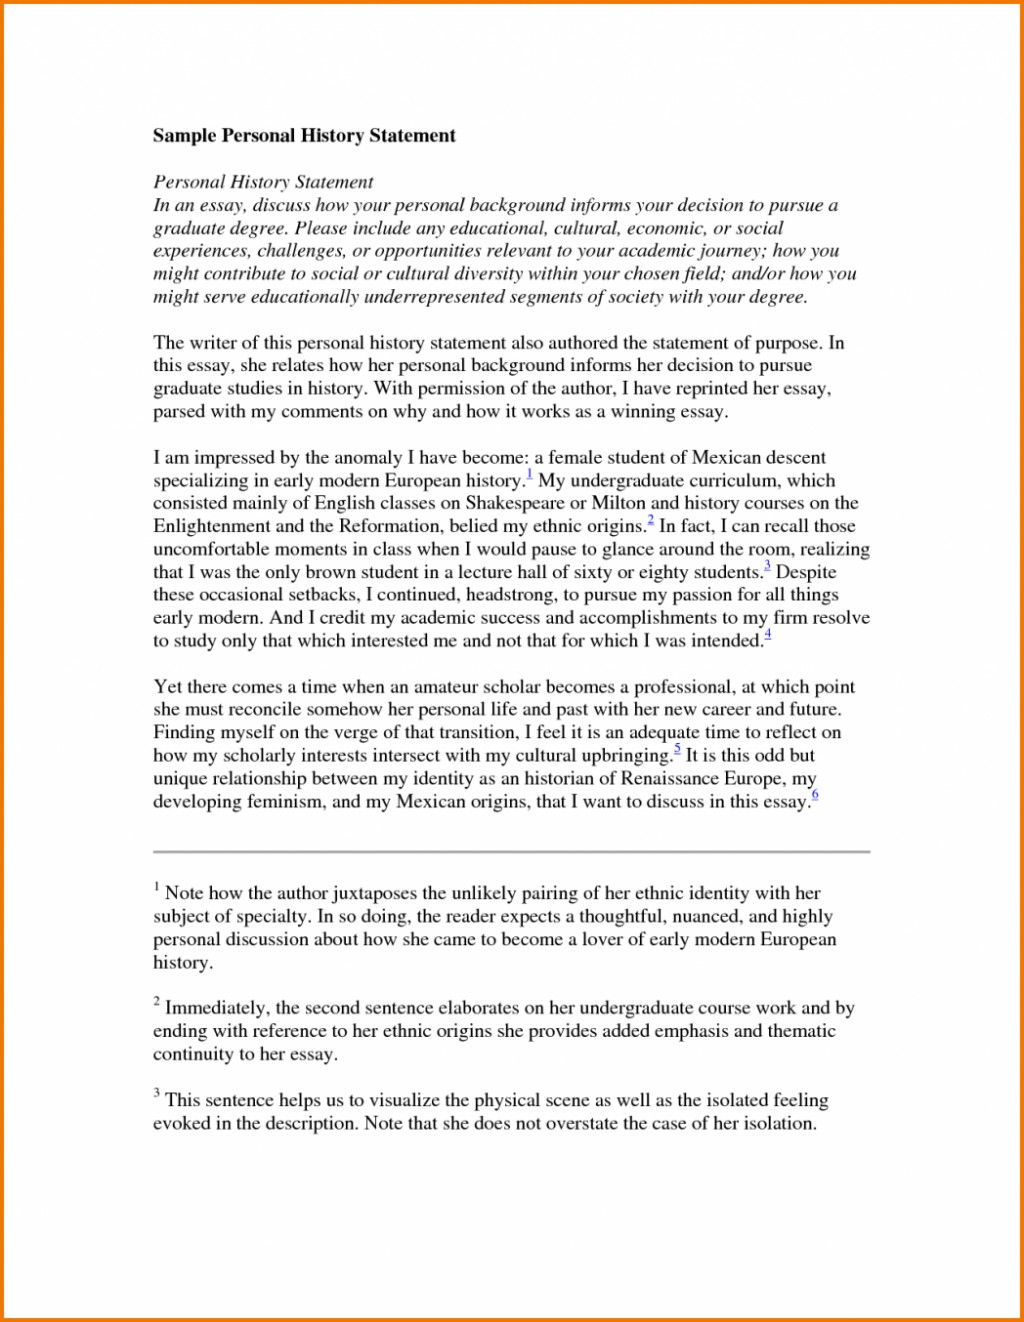 Board of graduate studies cambridge thesis submission